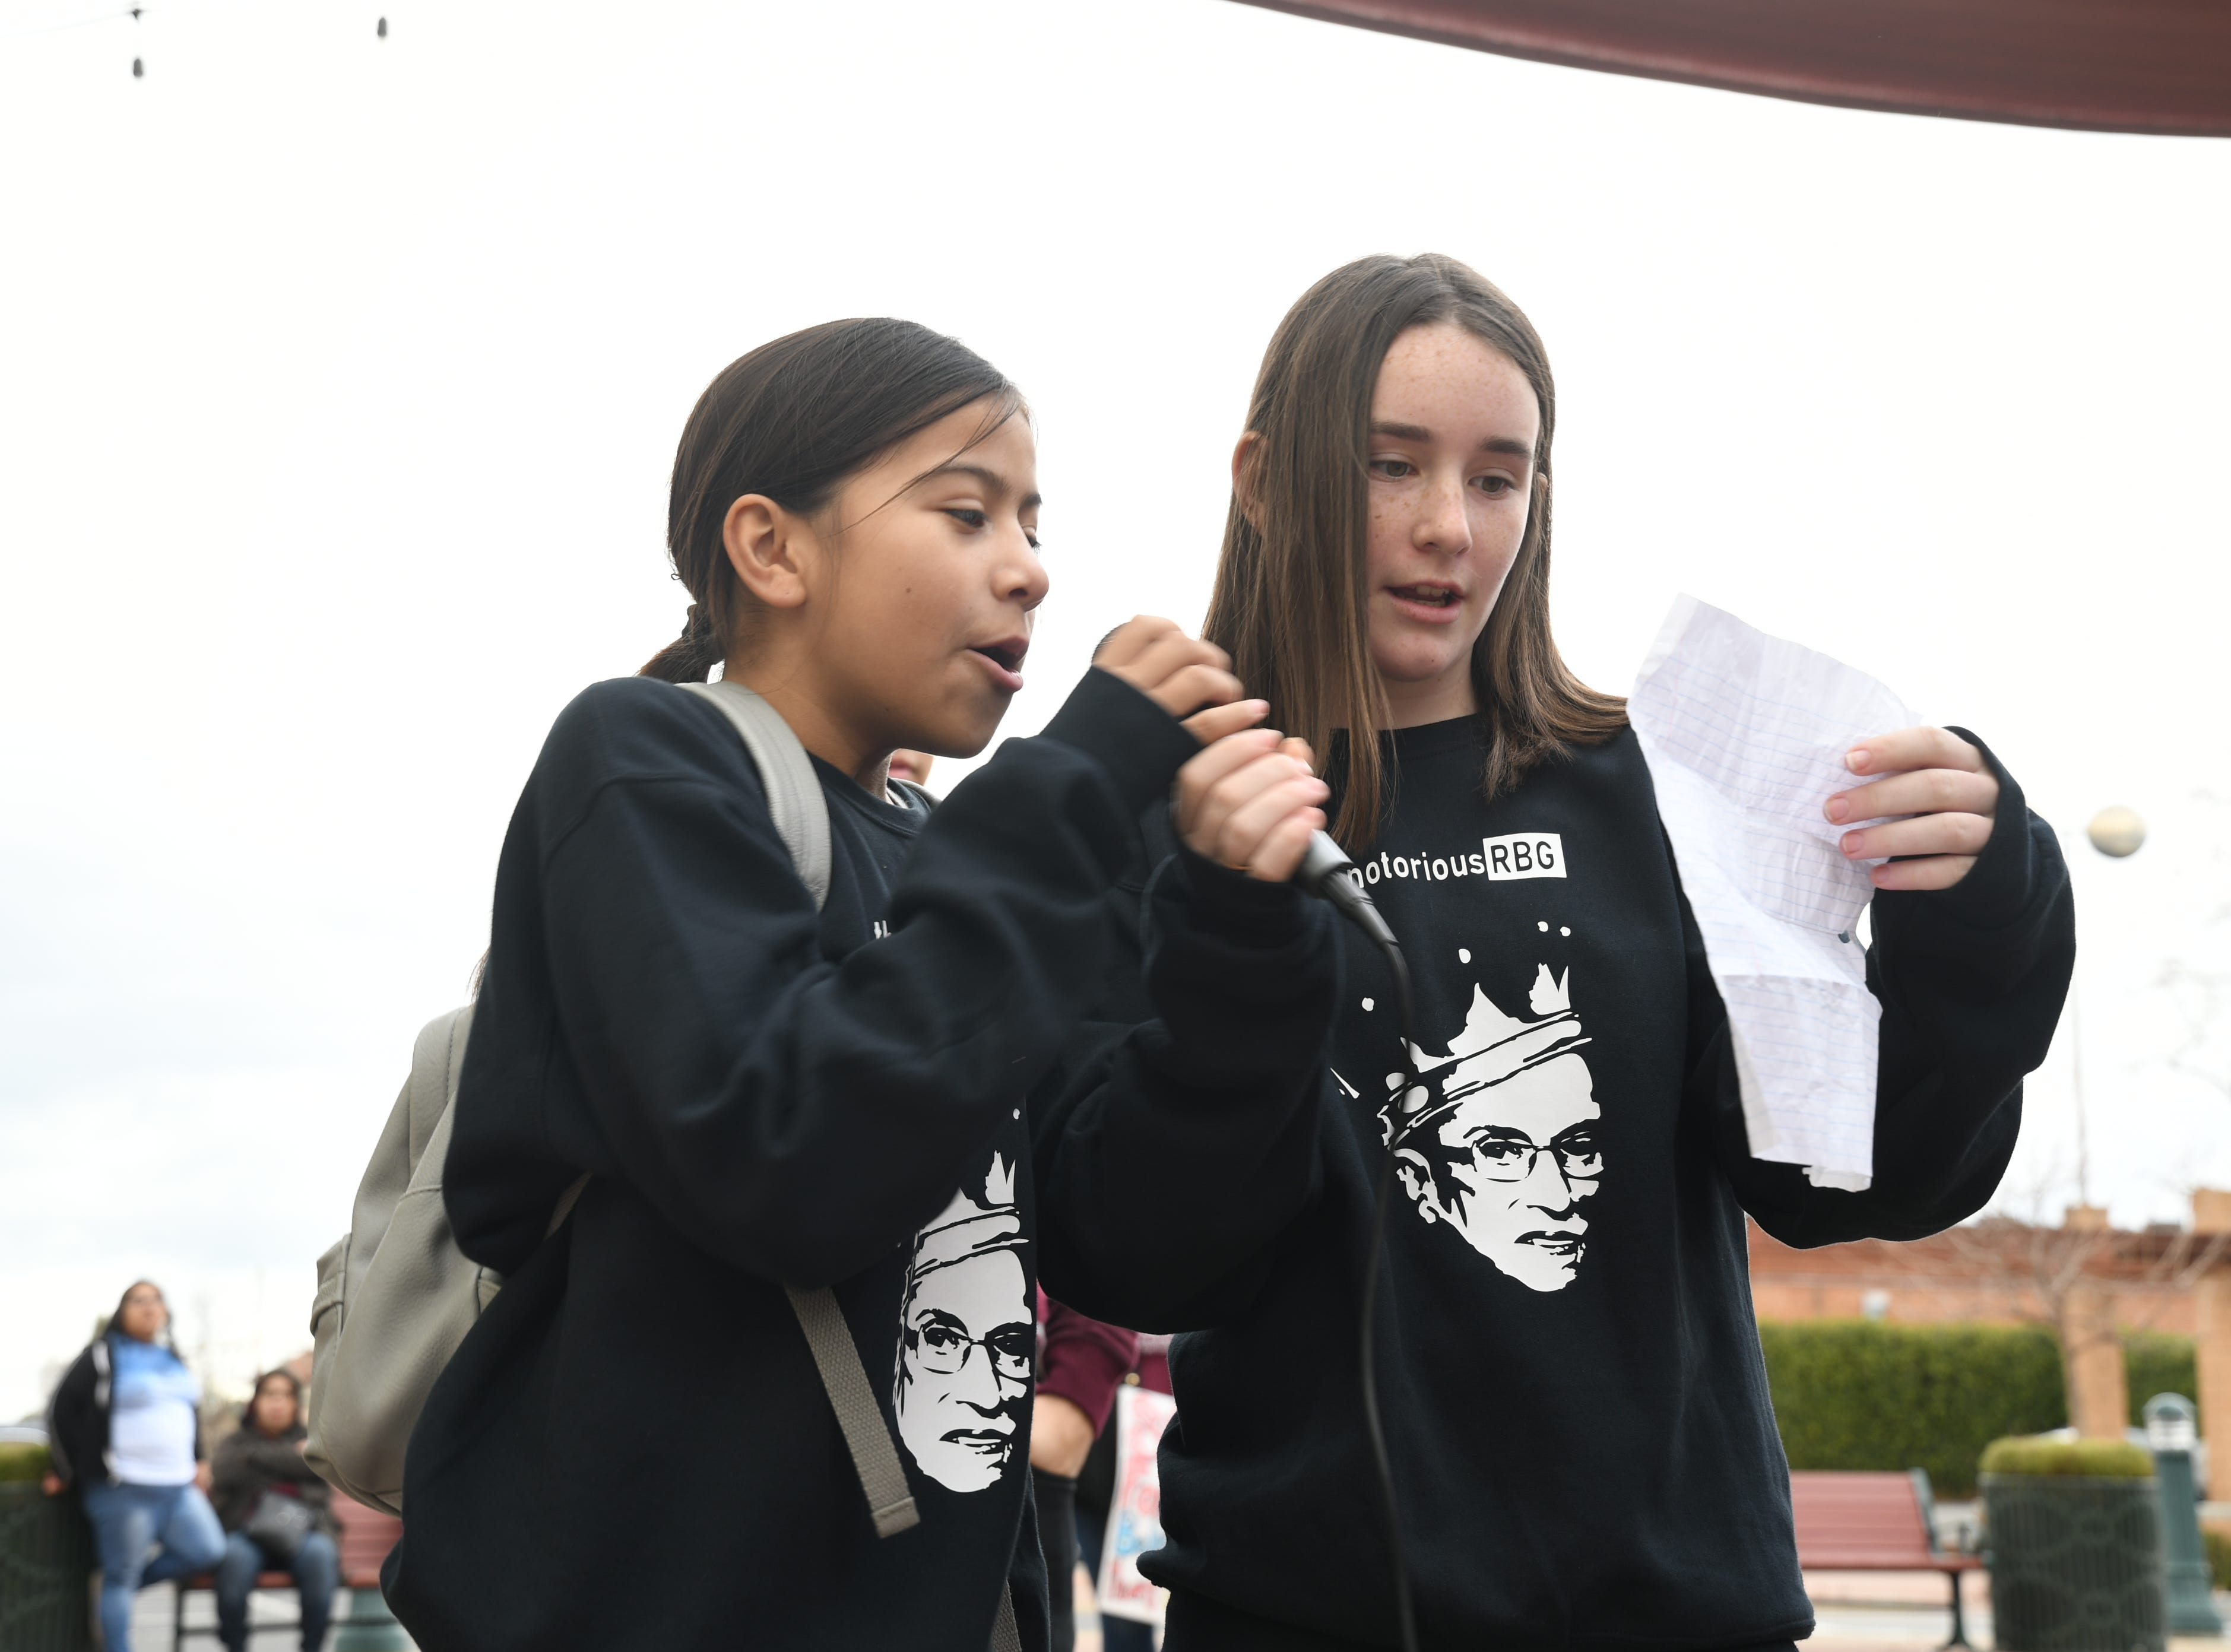 """Avery Voss, 12, and Daniella Rocha, 11, wear matching """"Notorious RBG"""" sweaters as they speak of their admiration for the supreme court justice."""